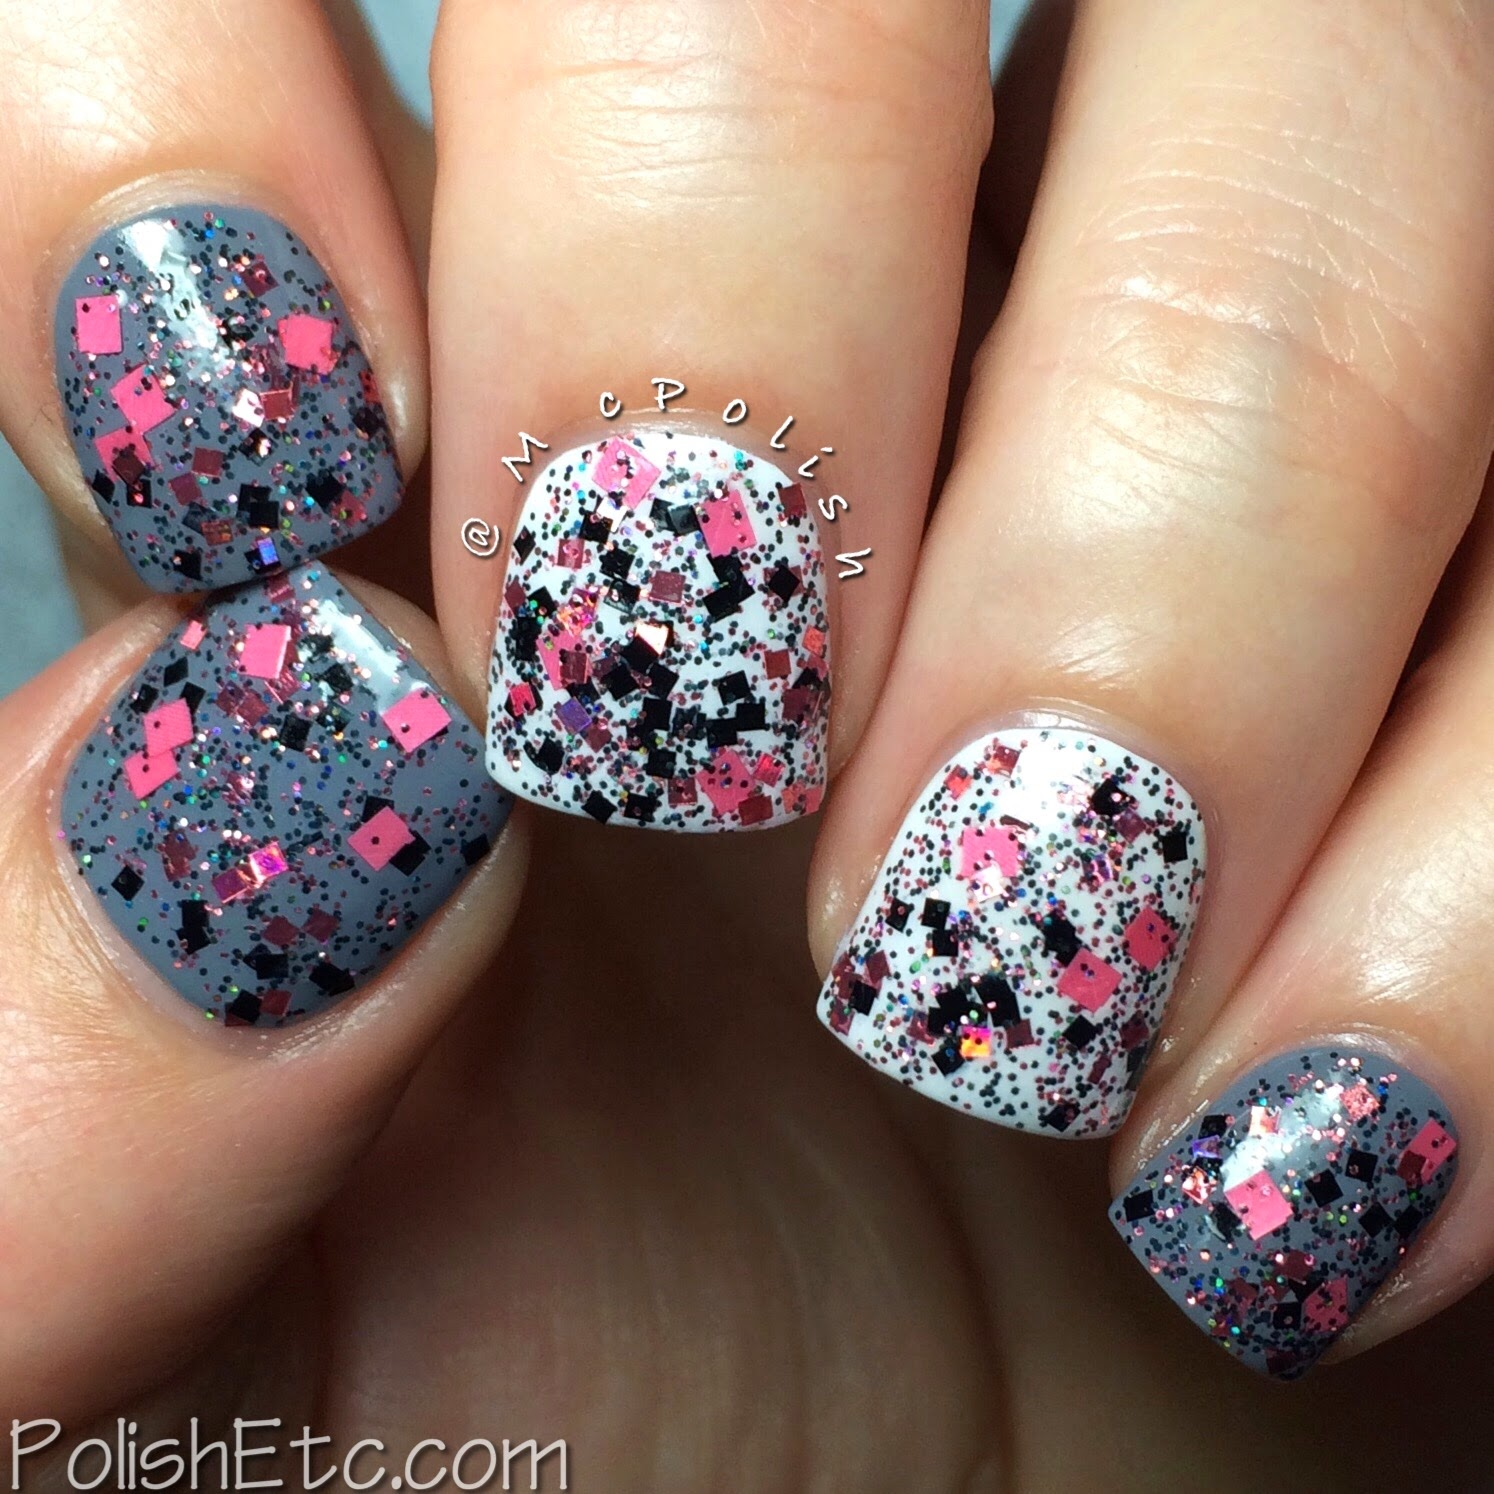 Nayll custom nail polishes - McPolish - Krissy